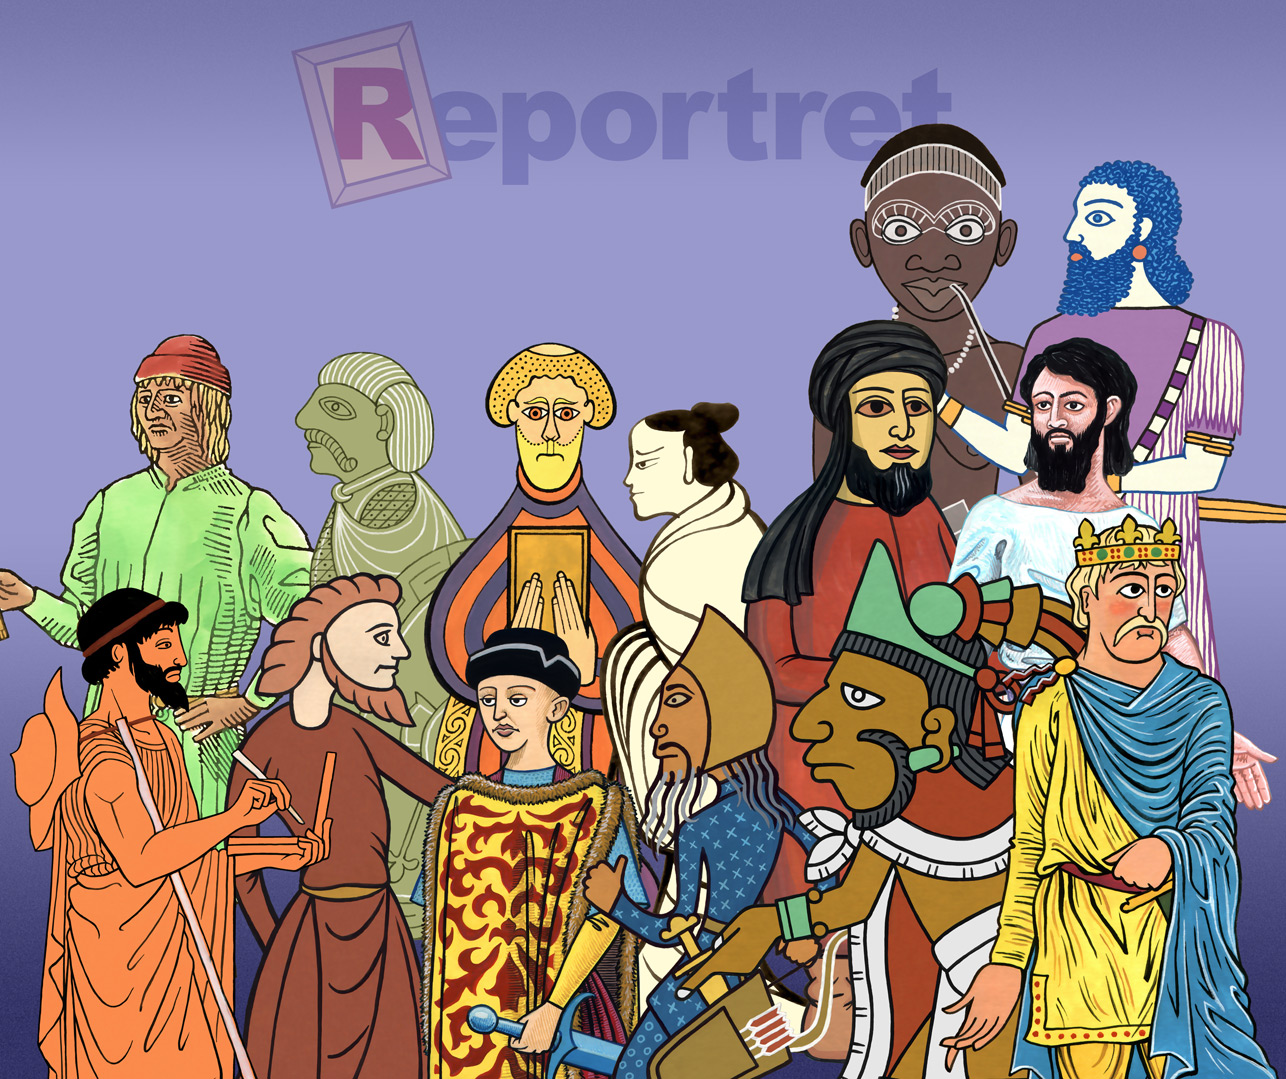 The group portrait of Reportret